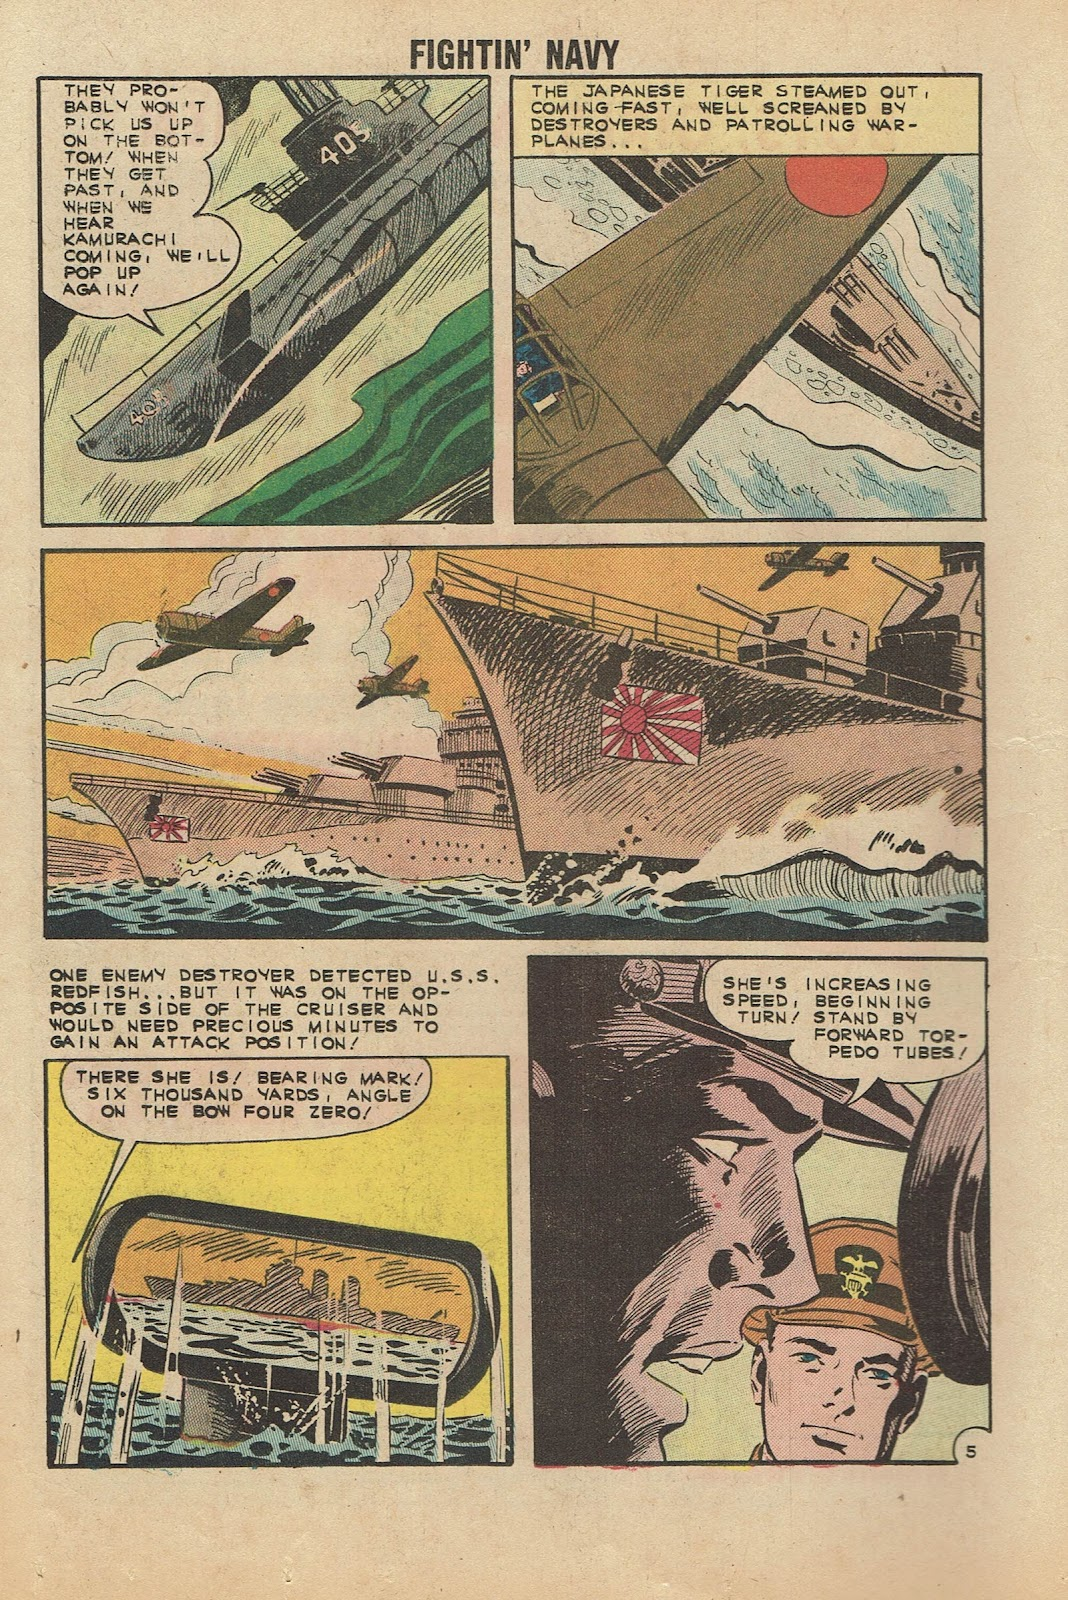 Read online Fightin' Navy comic -  Issue #104 - 16